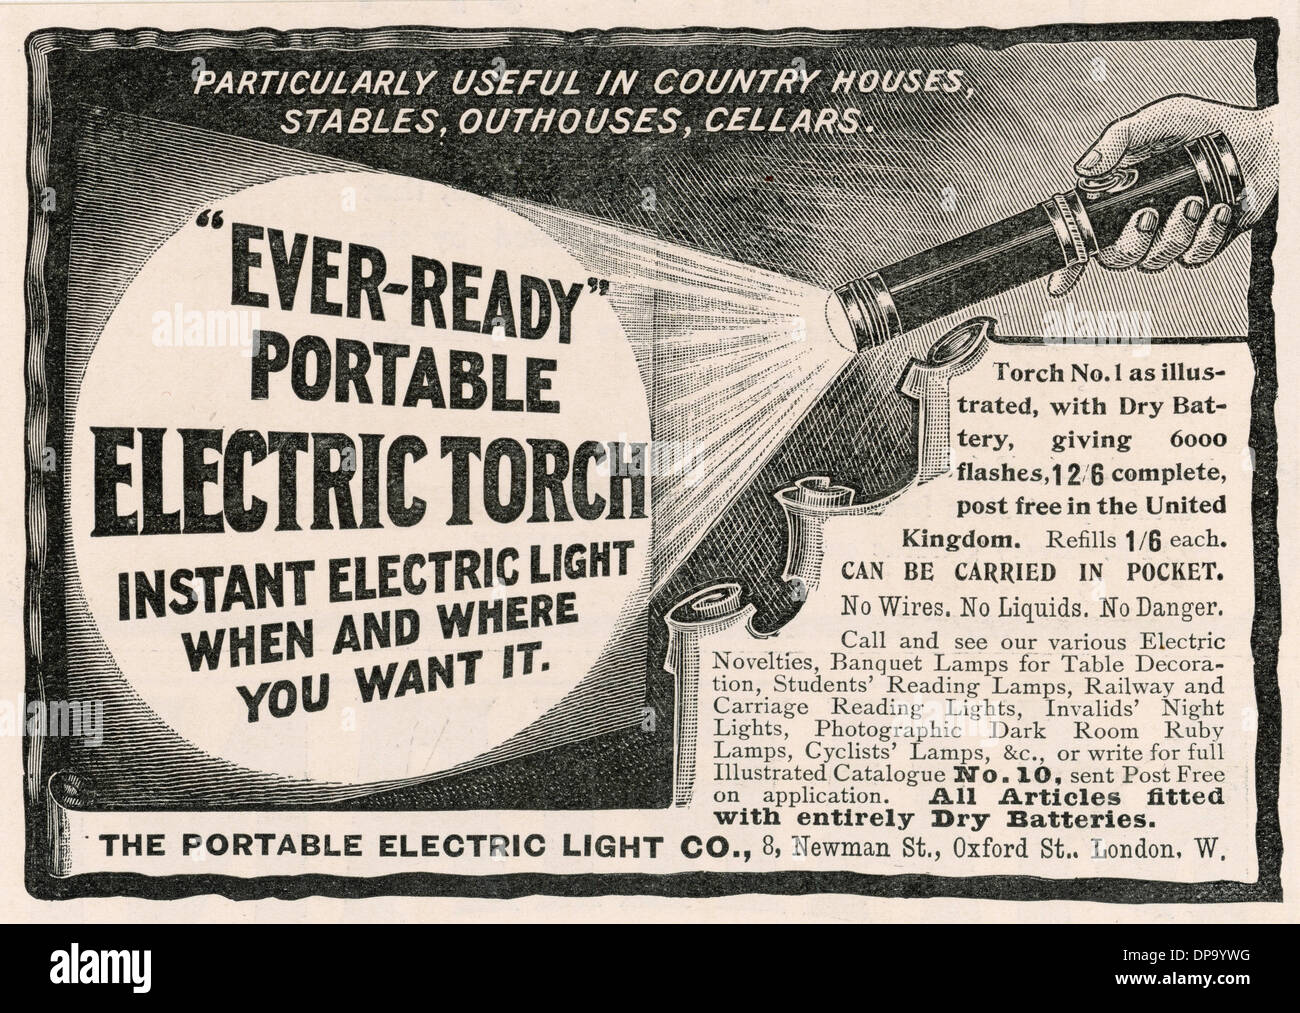 ELECTRIC TORCH AD 1902 - Stock Image